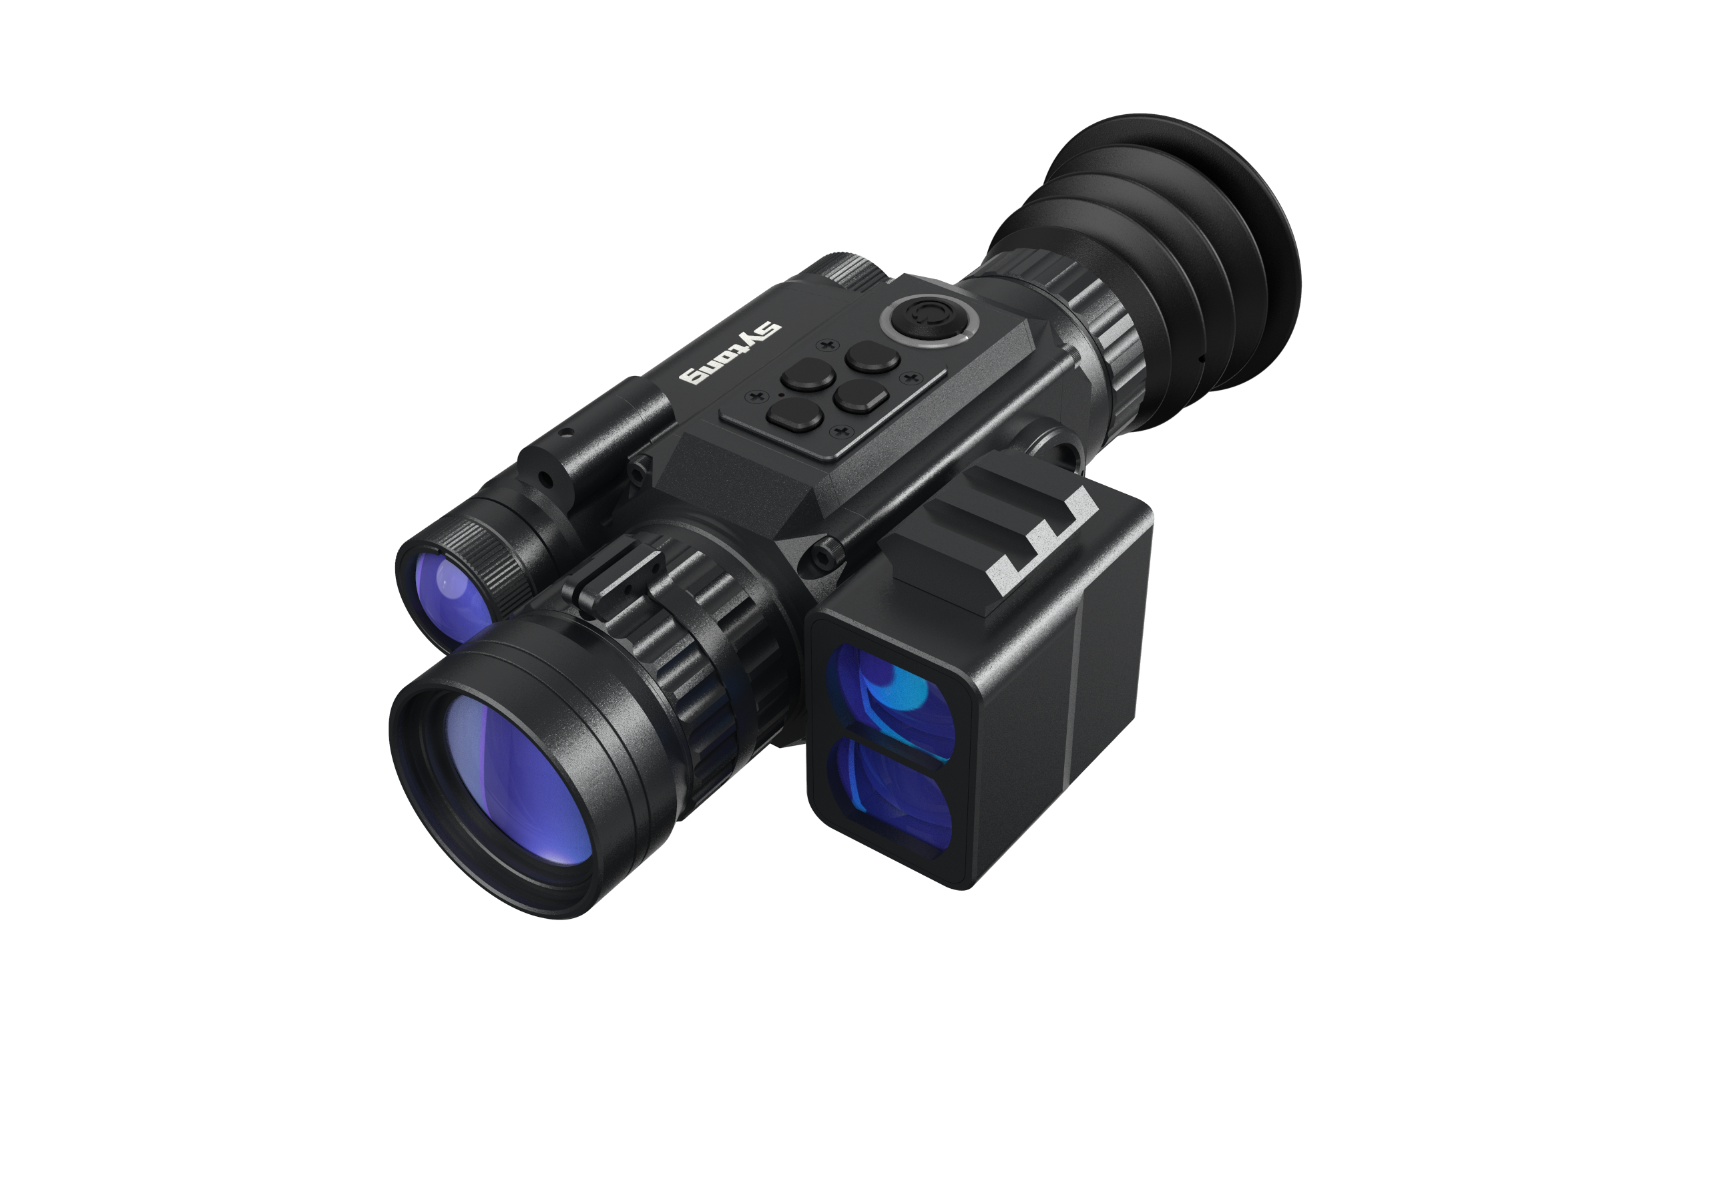 Sytong HT60LRF 6.5-13x Digital Night Vision Rifle Scope with Laser Rangefinder